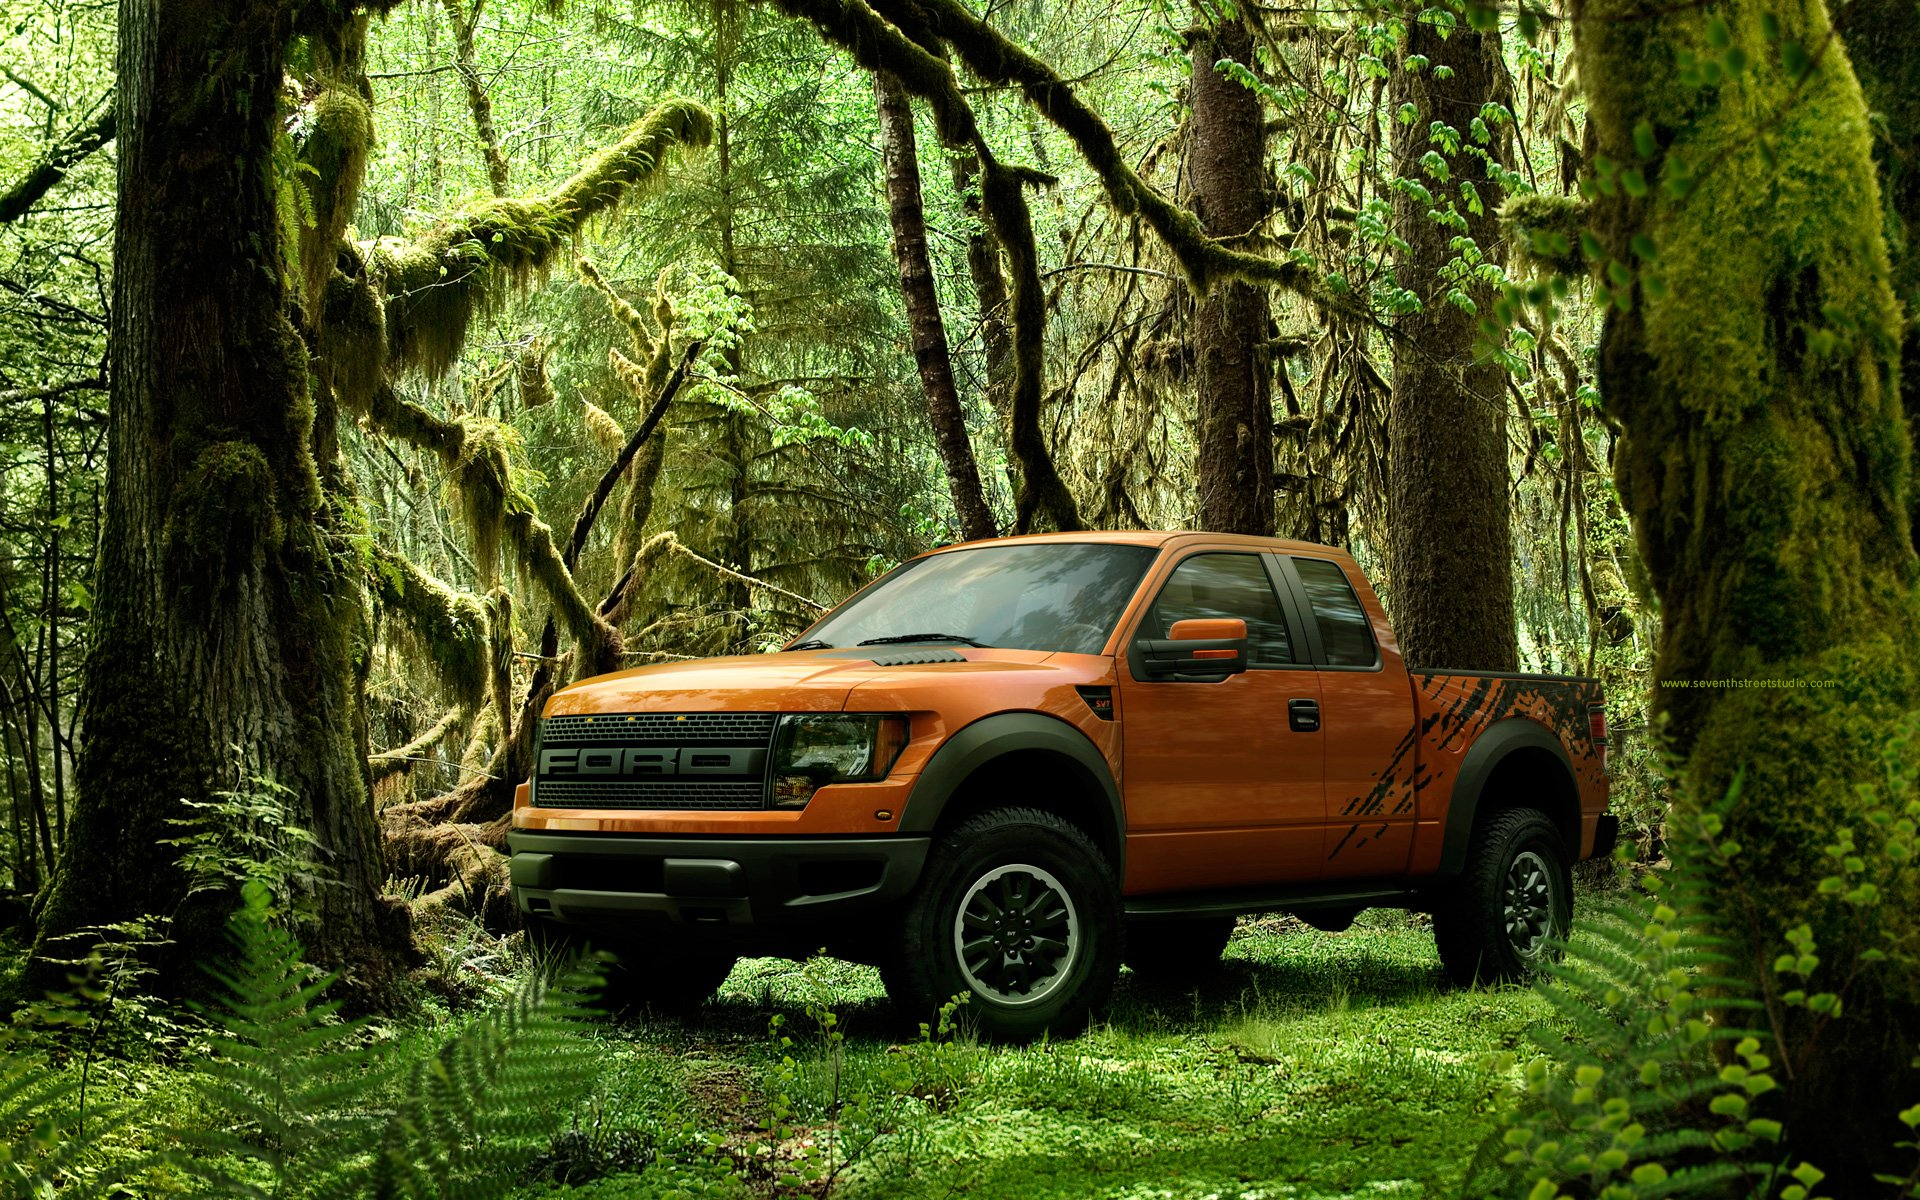 Ford Raptor Wallpapers HD Wallpapers 1920x1200